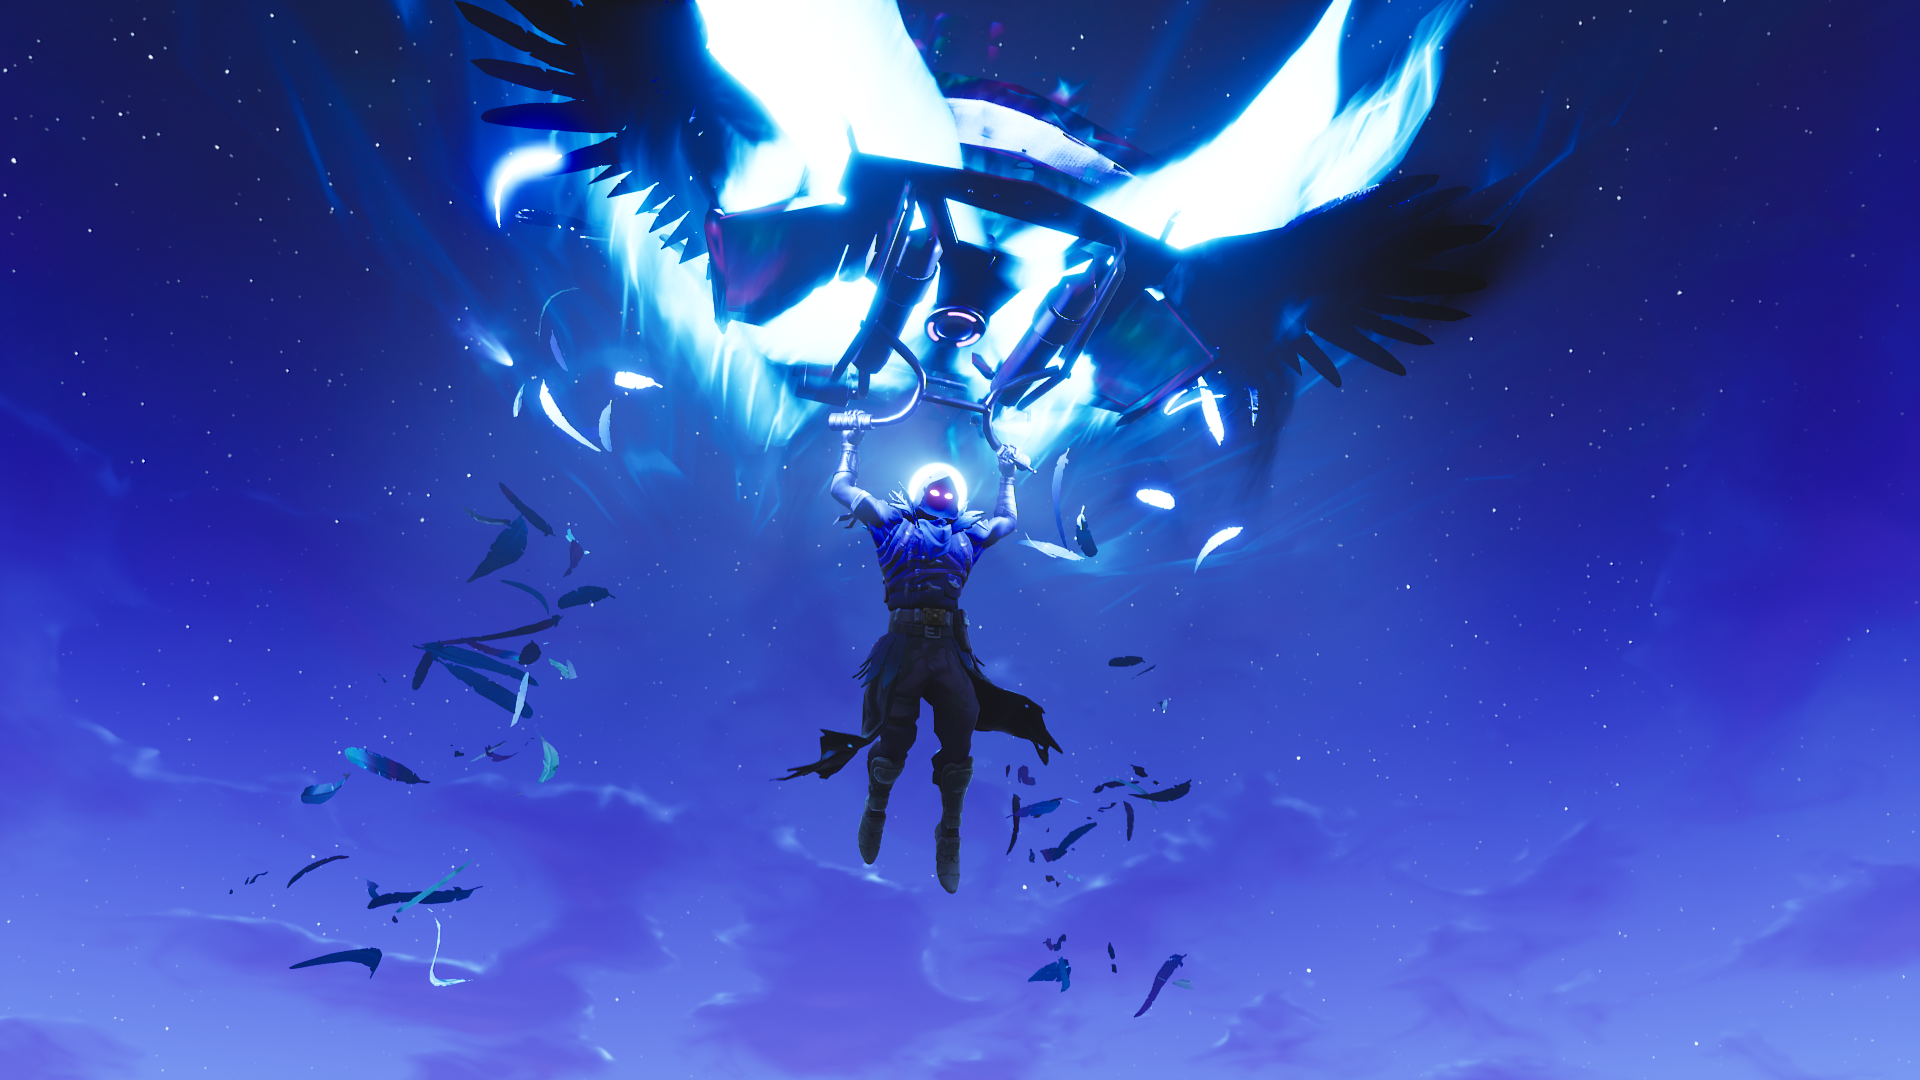 Fortnite background hd png tilted